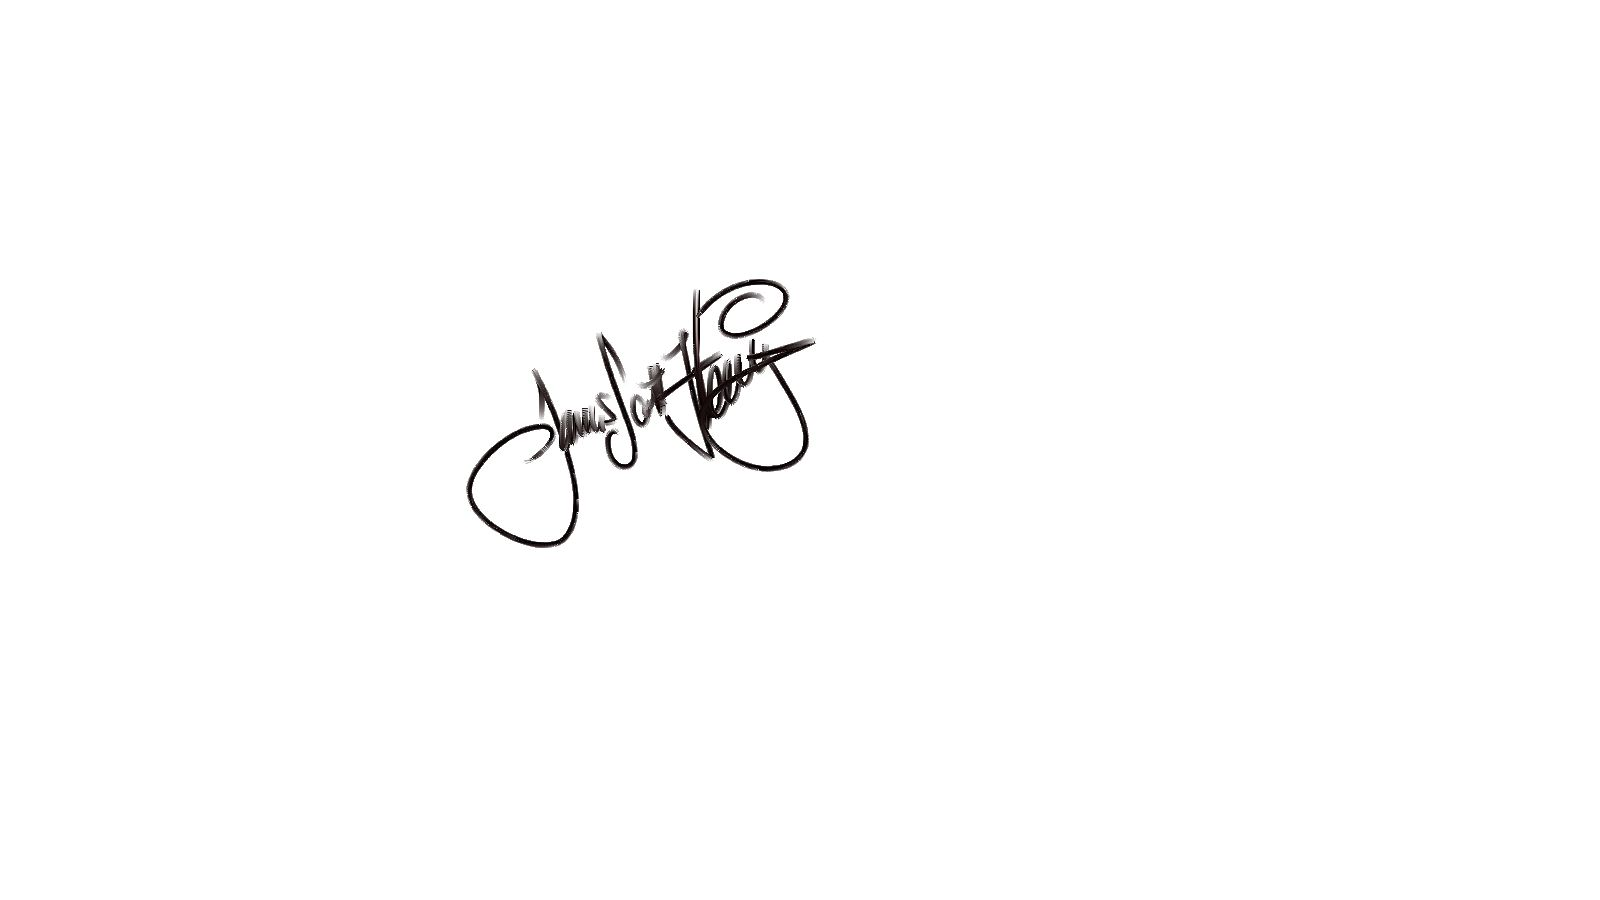 James scott Fleming's Signature